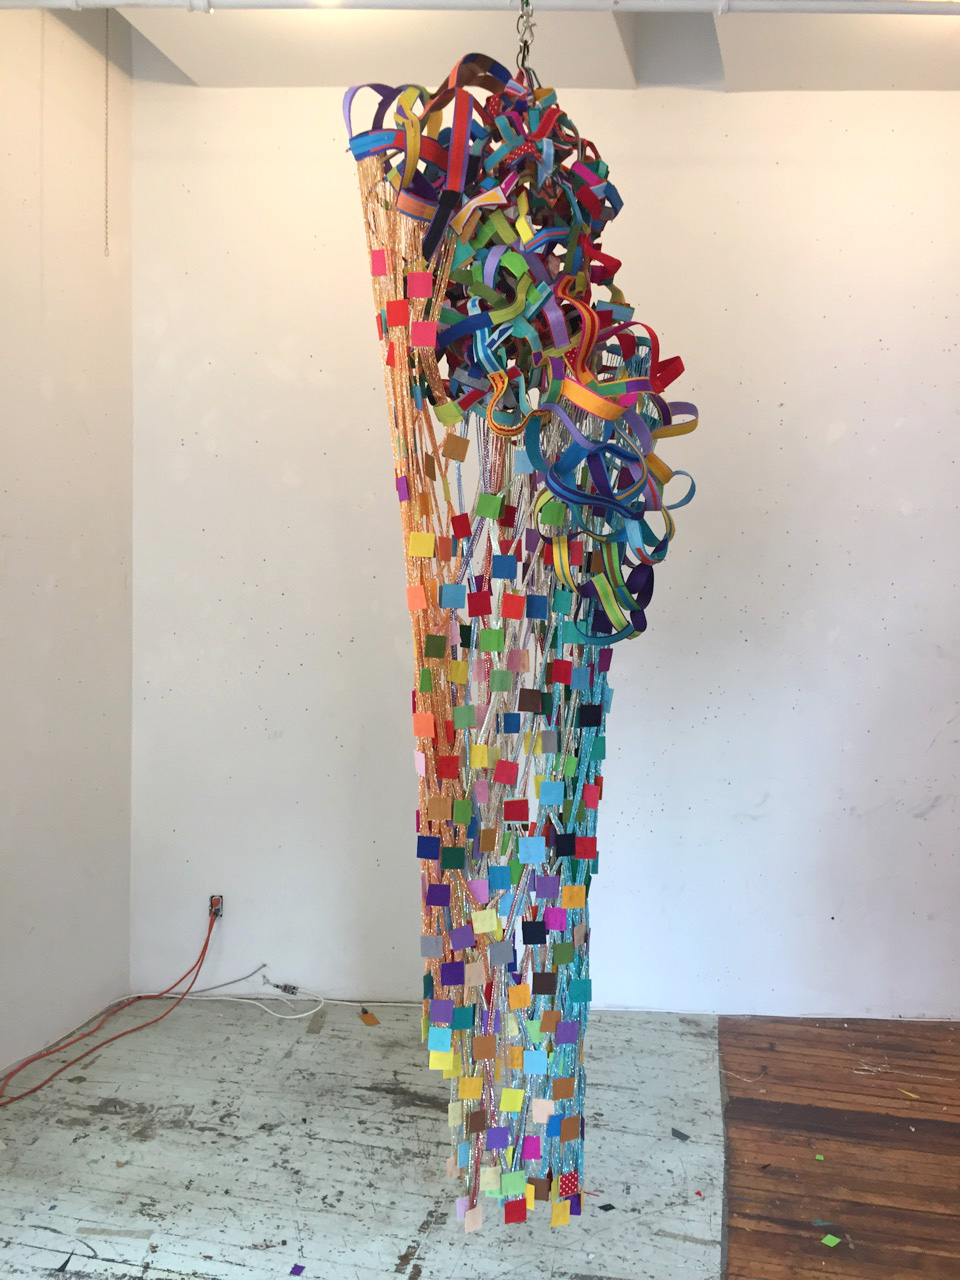 SUTURES When the Rains Came  2018 wire, felt, thread, string, zippers, glue and hardware 120 x 28 x 28 in (304.8 x 71.1 x 71.1 cm) Height is variable Courtesy of Pavel Zoubok Fine Art, New York 2018 Marc Straus Gallery